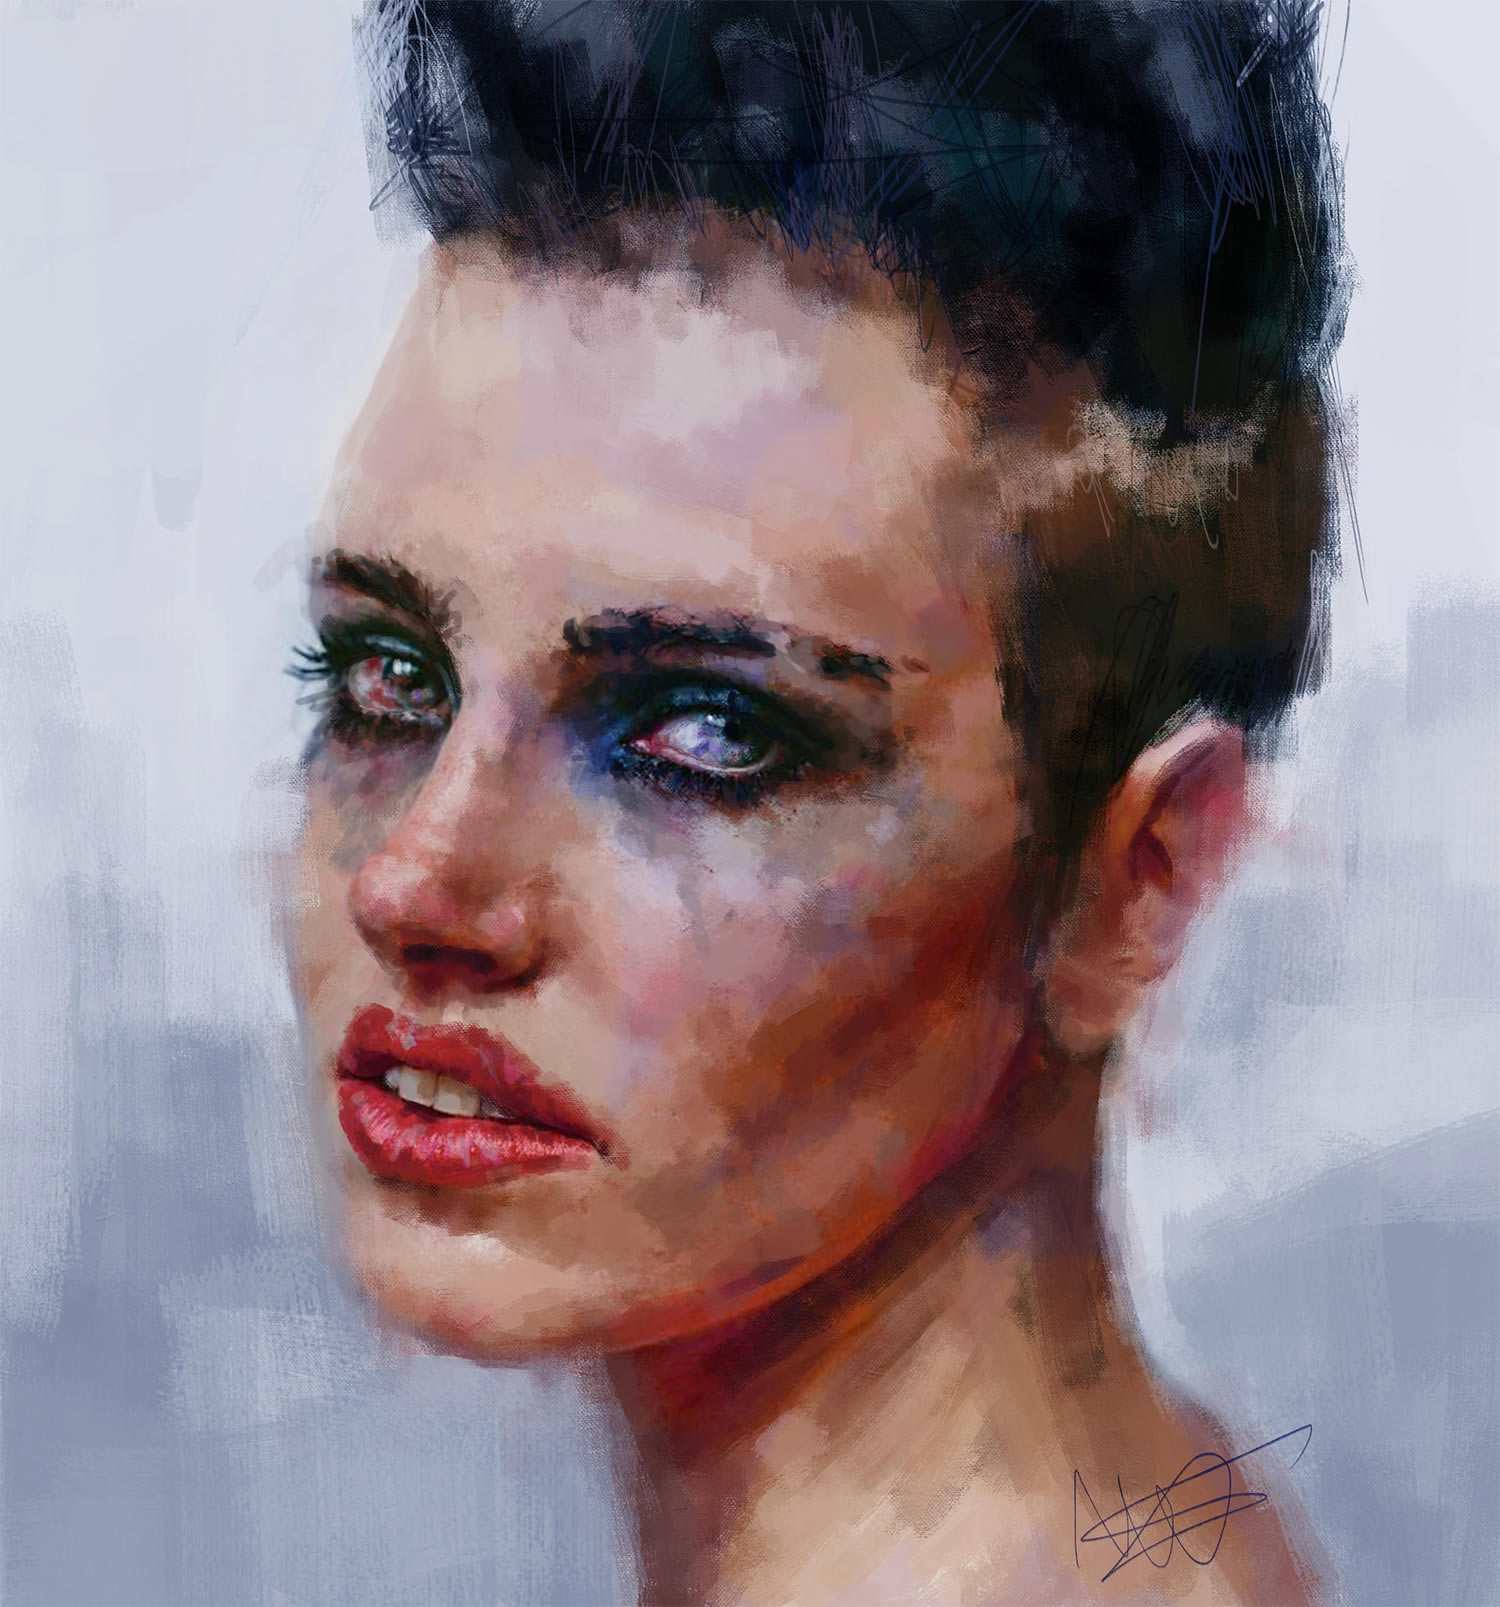 woman with short hair crying, digital painting